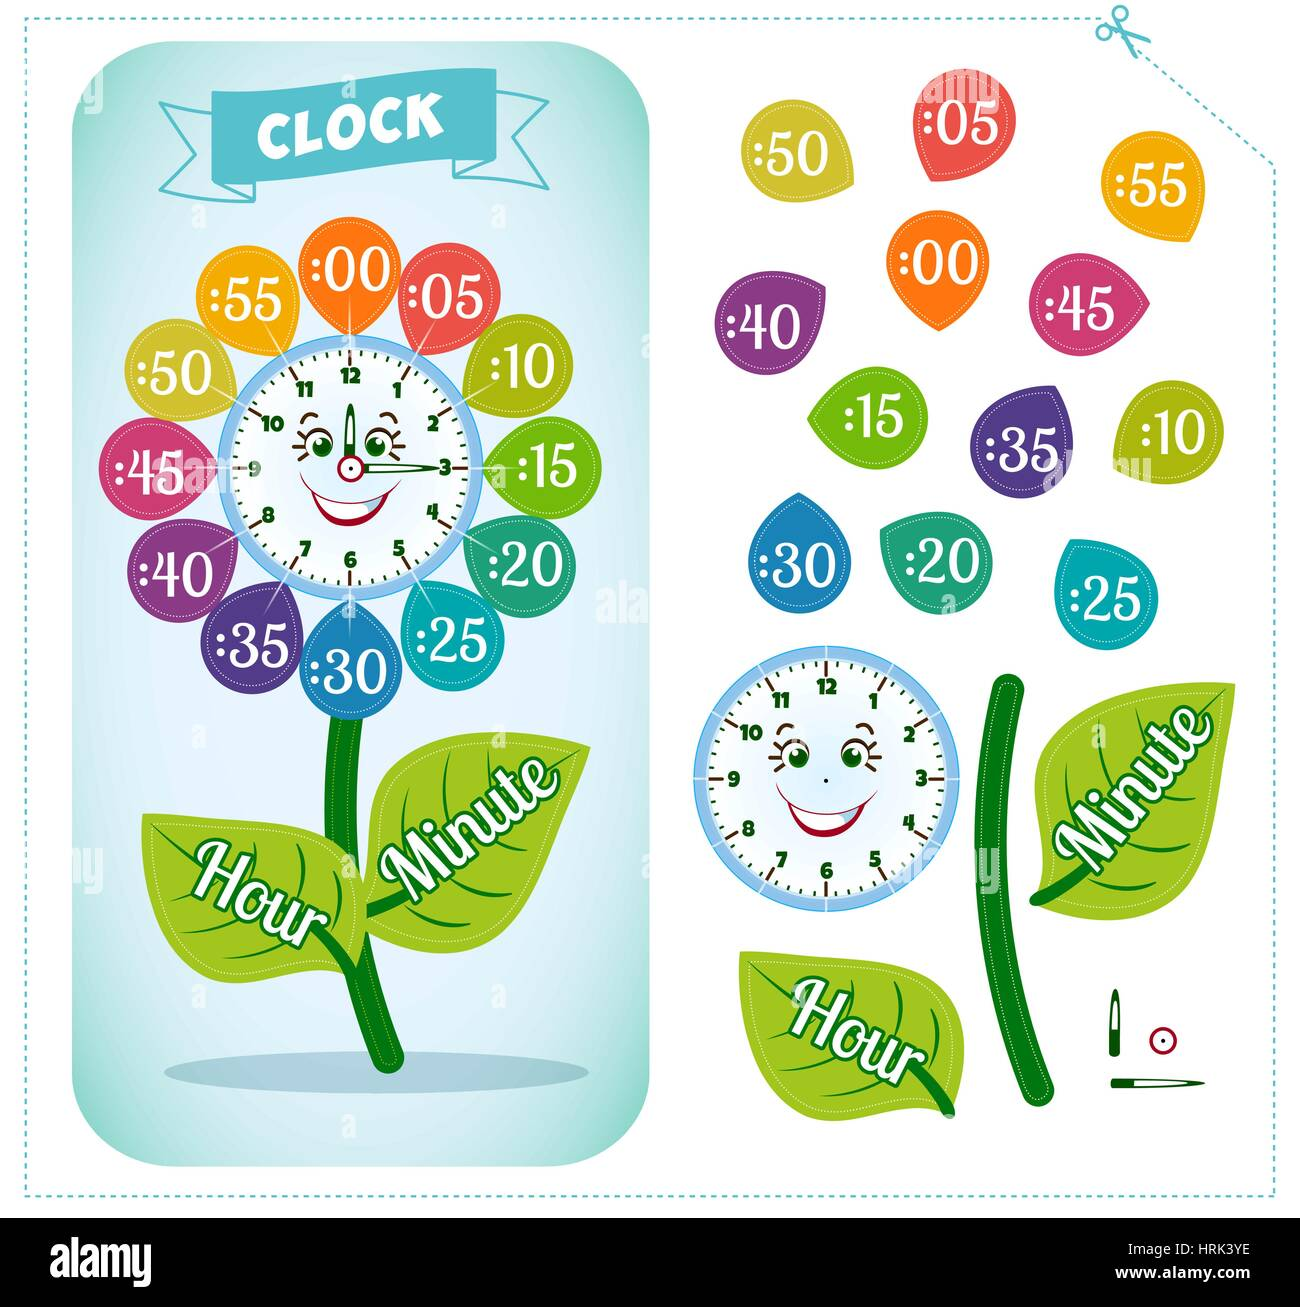 Telling Time Worksheet For School Kids To Identify The Time Clock